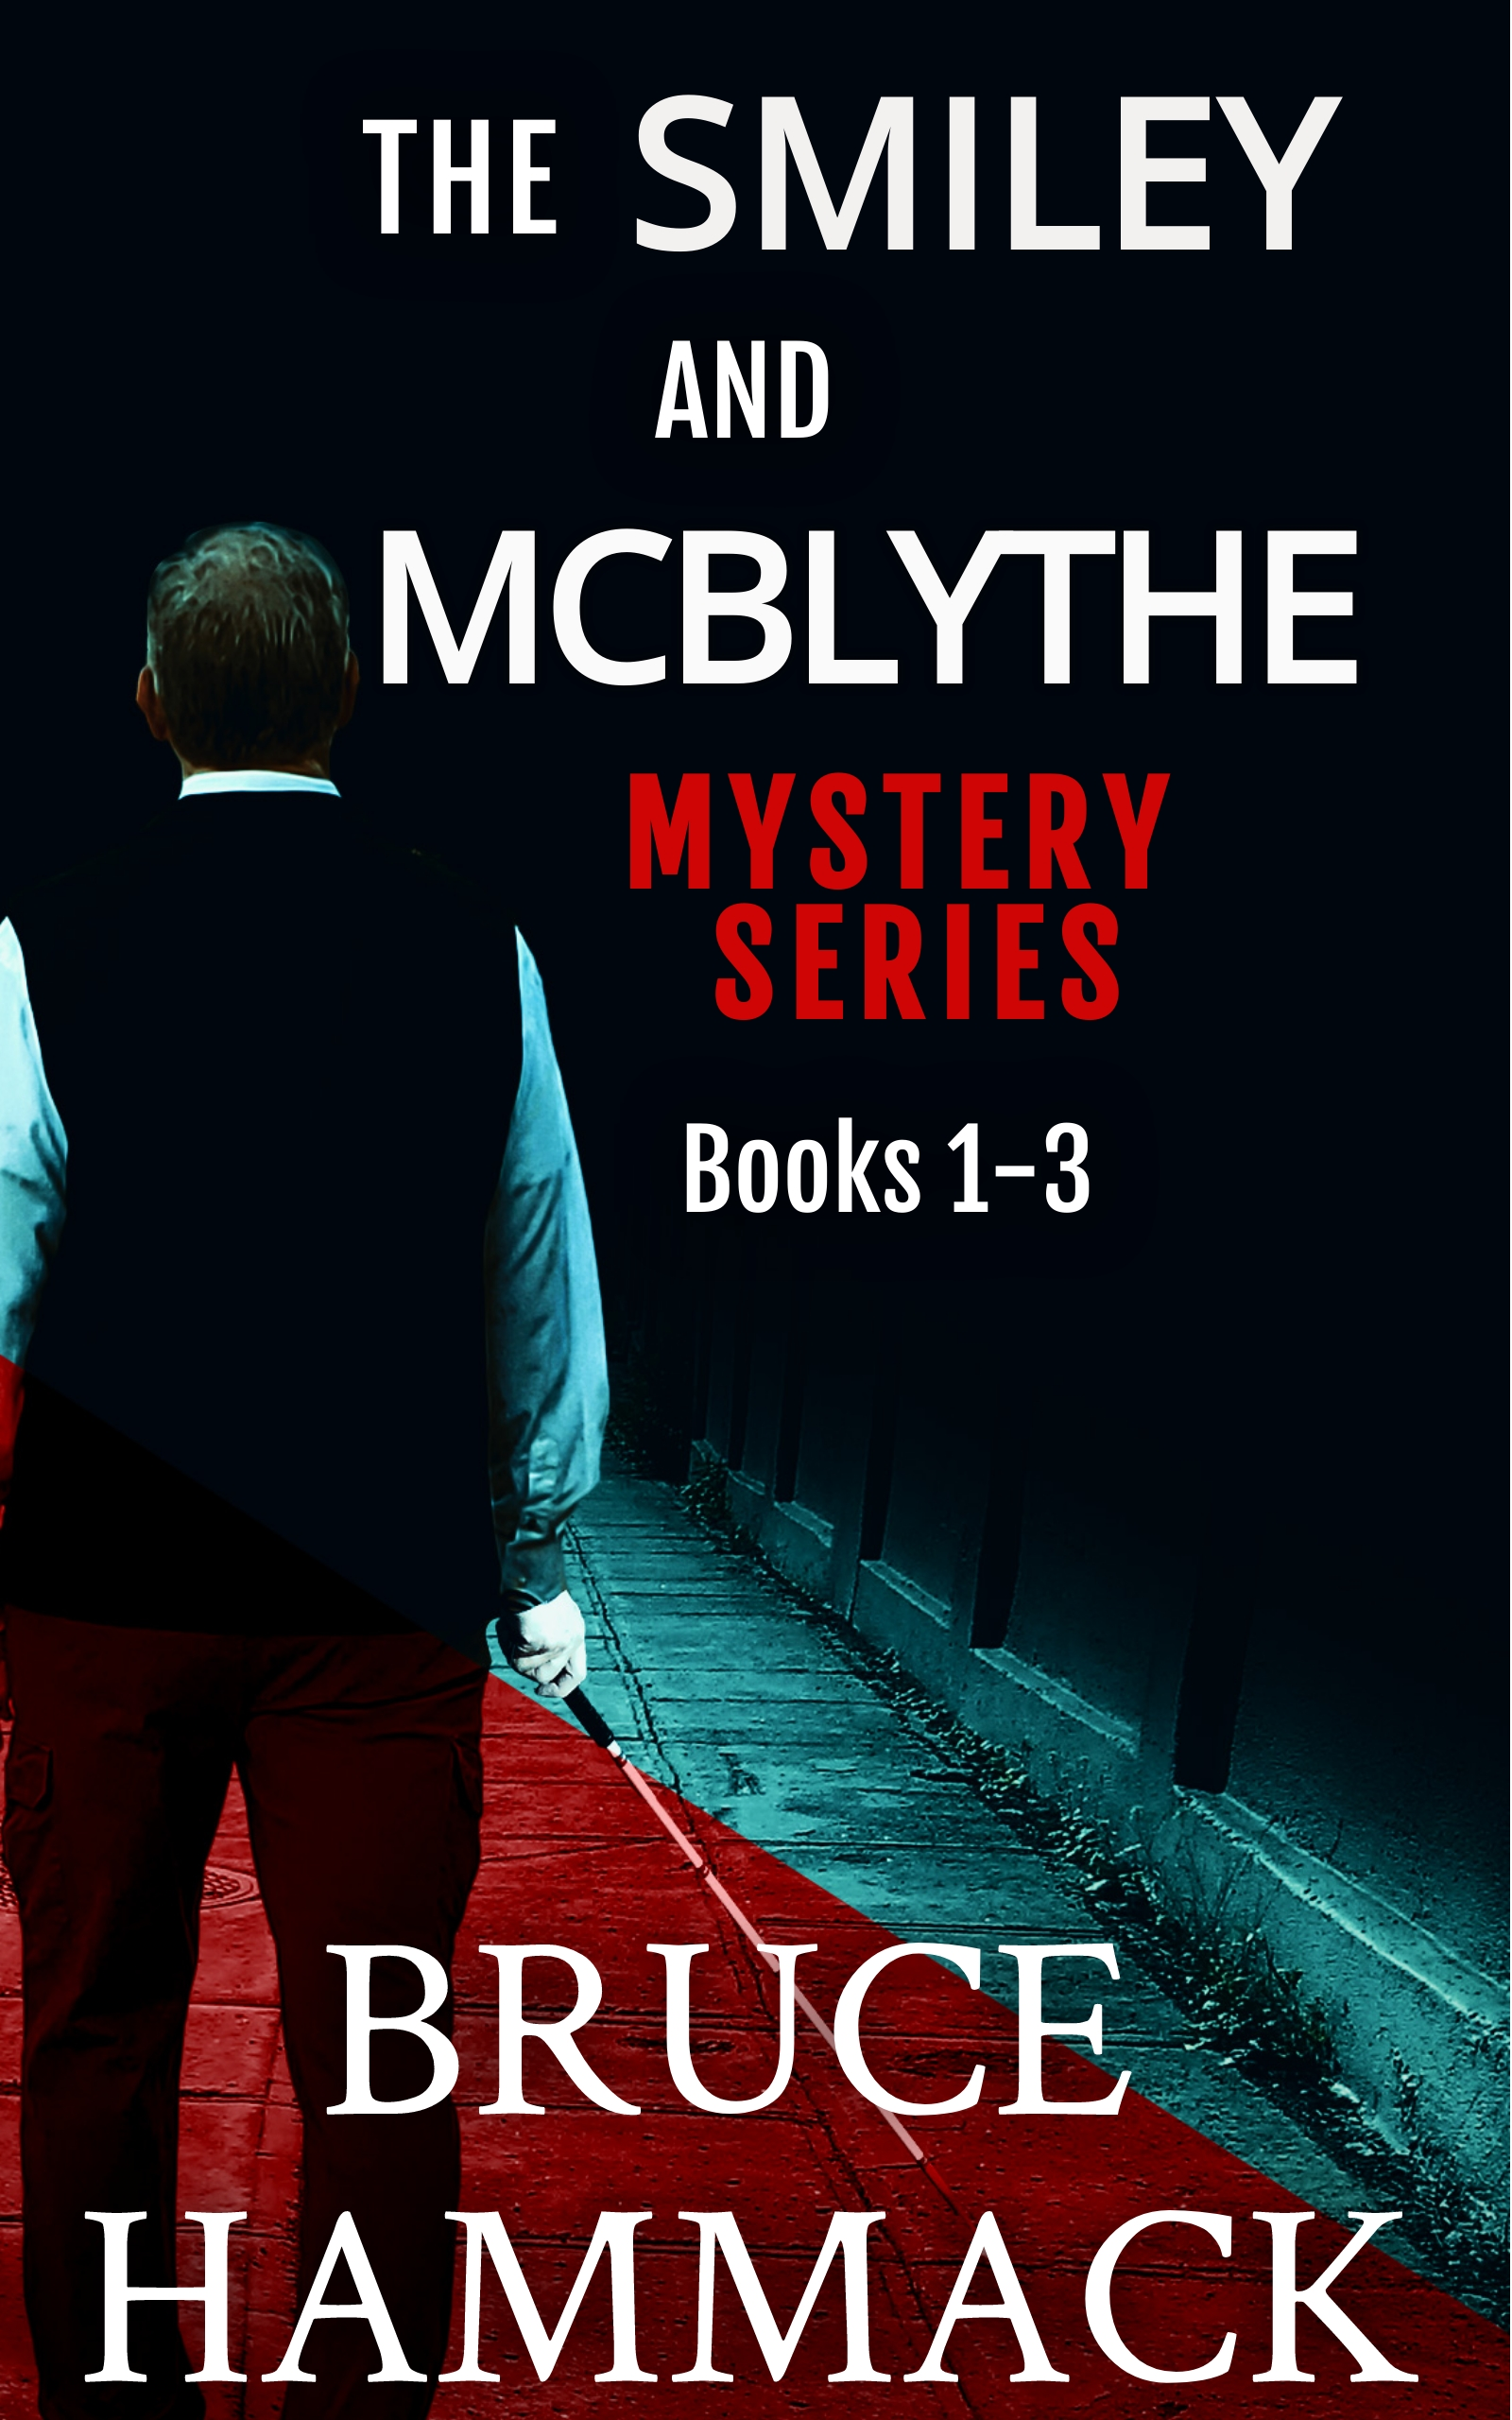 [PDF] [EPUB] The Smiley and McBlythe Mystery Series Books 1-3 Download by Bruce Hammack